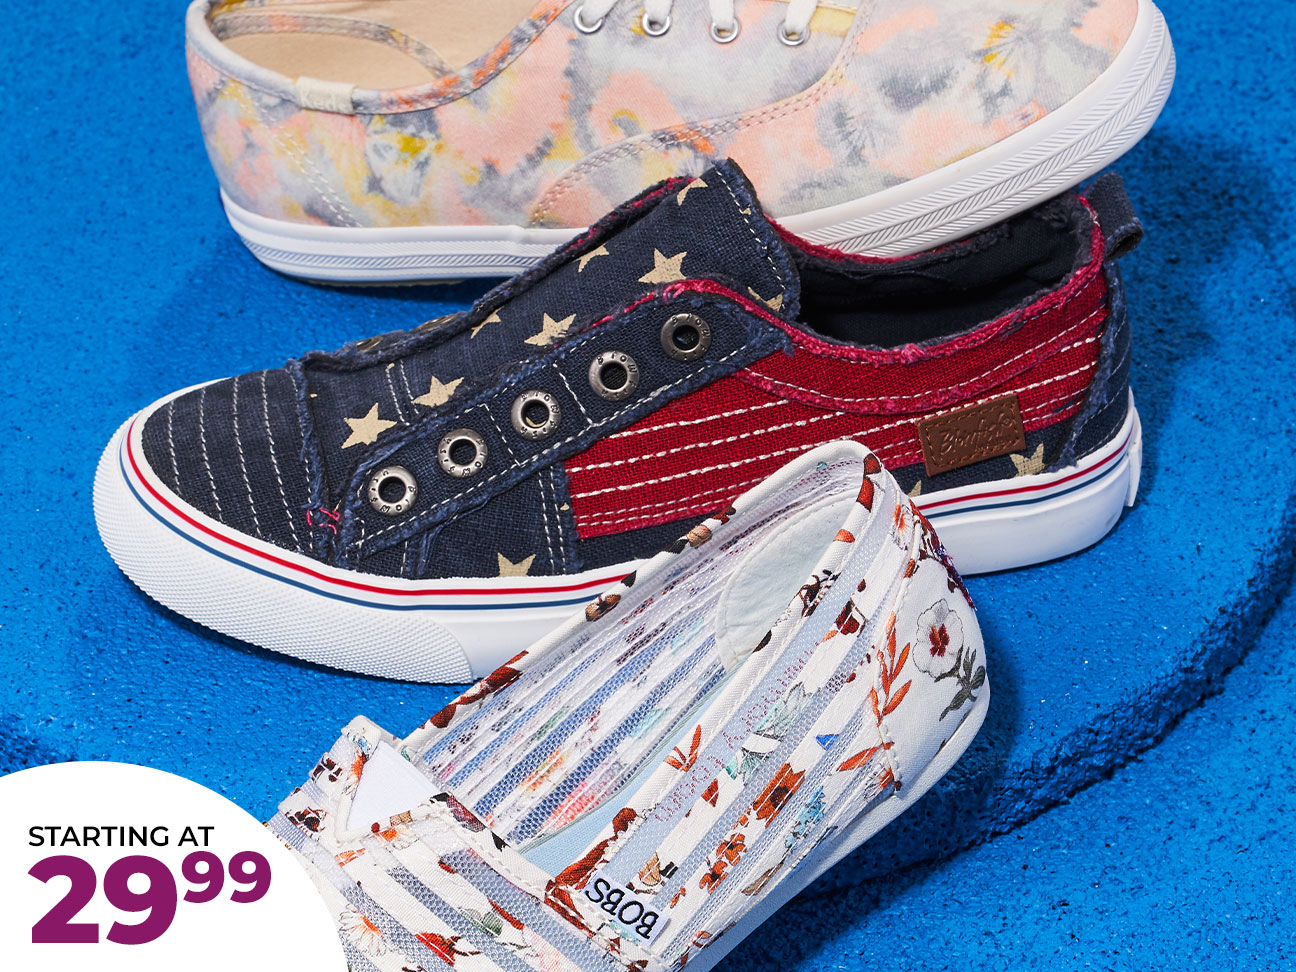 assorted keds and skechers canvas casuals starting at $29.99